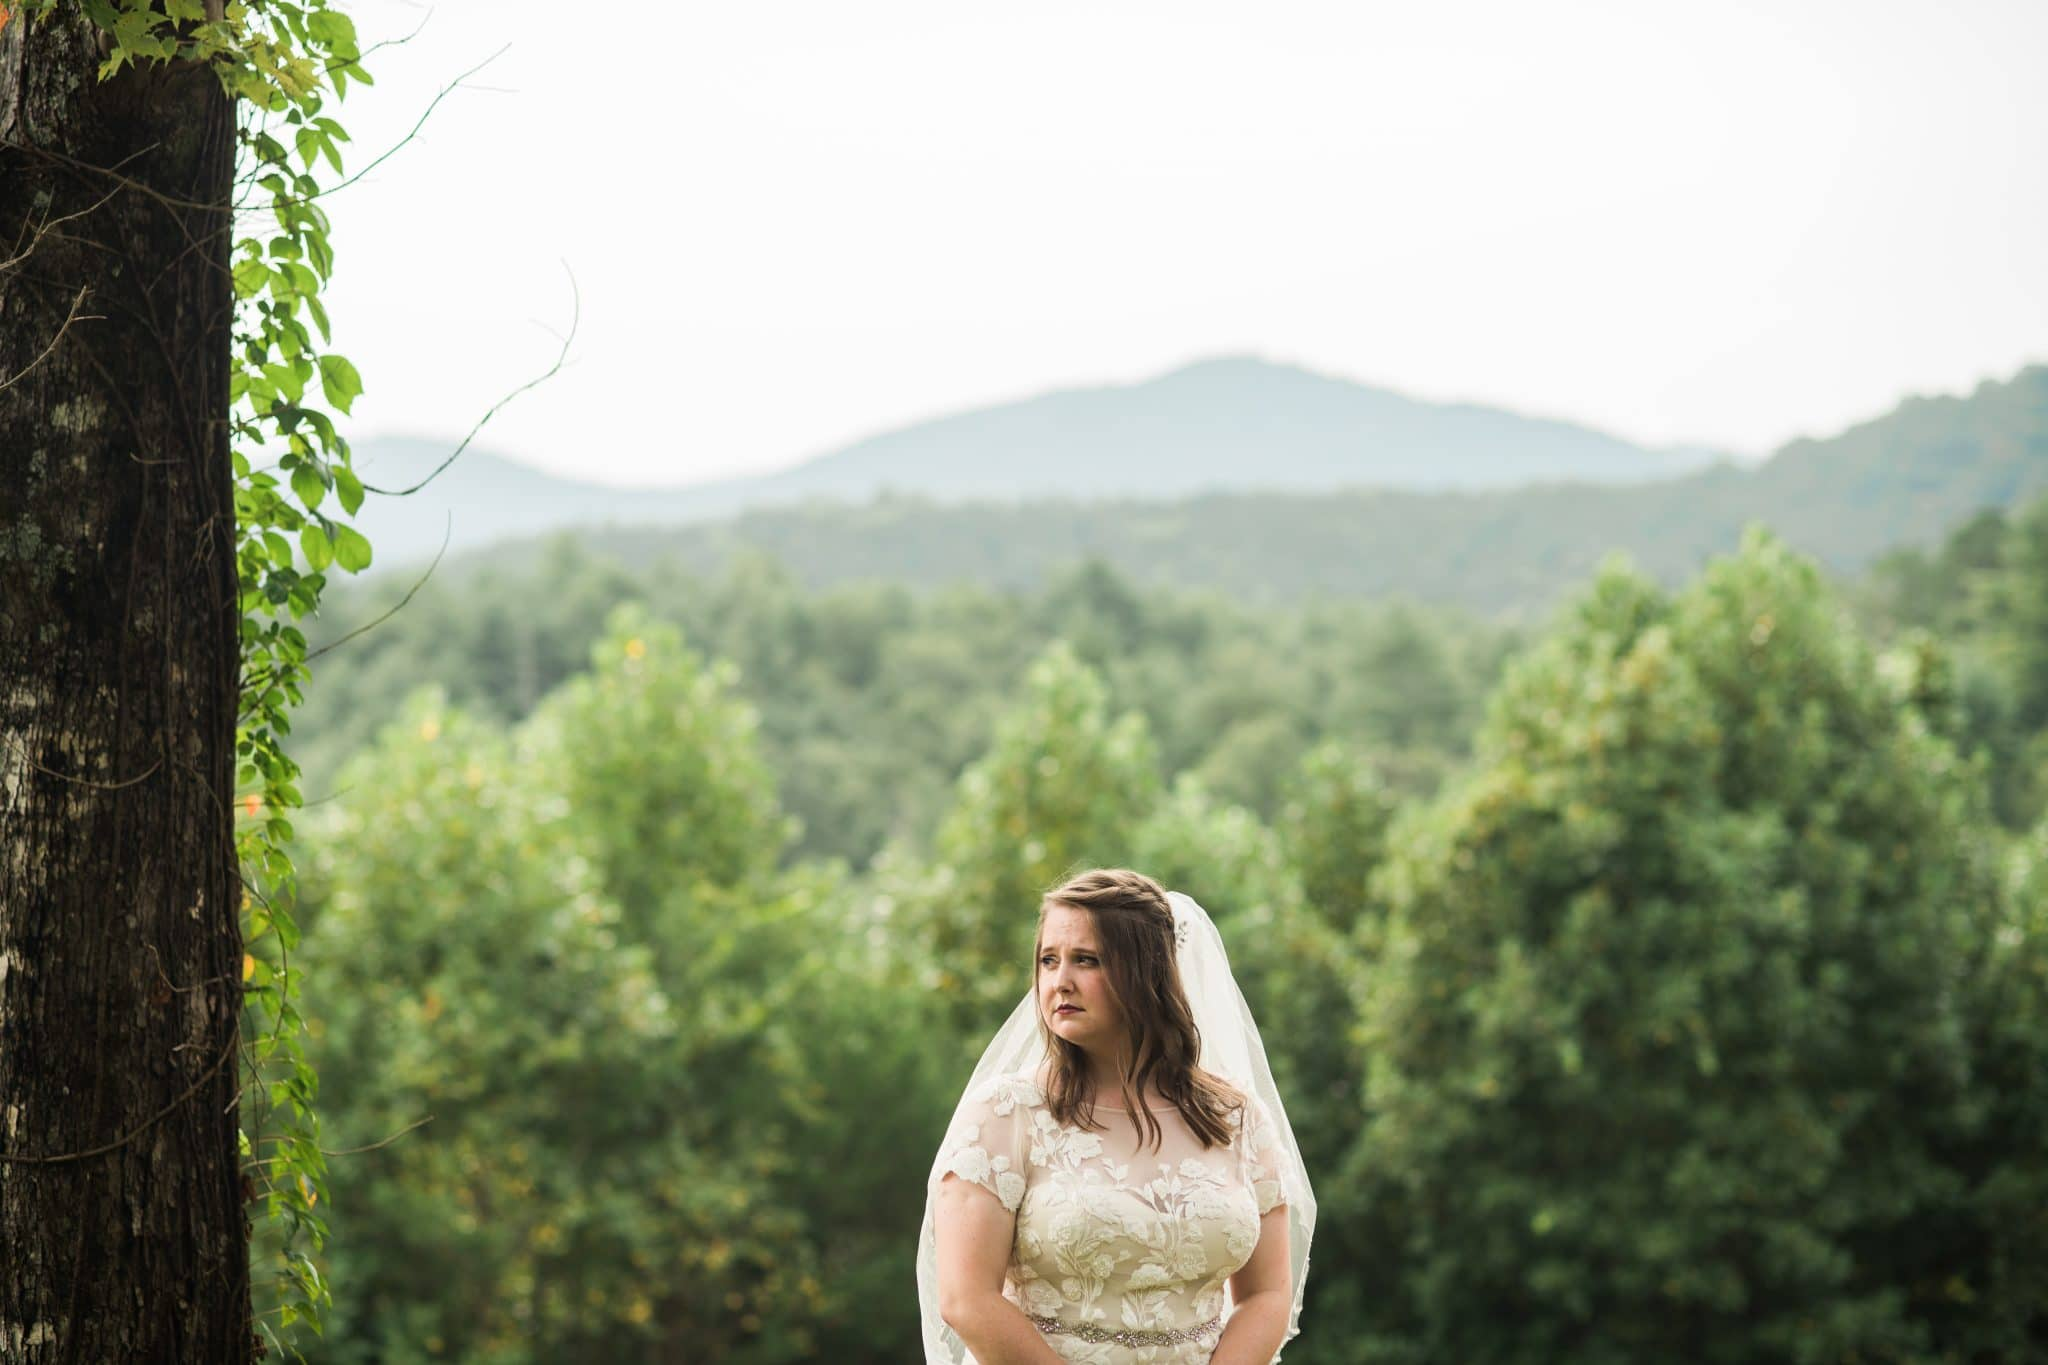 bridal portraits in the mountains with ATL wedding photographer Raven Shutley Studios